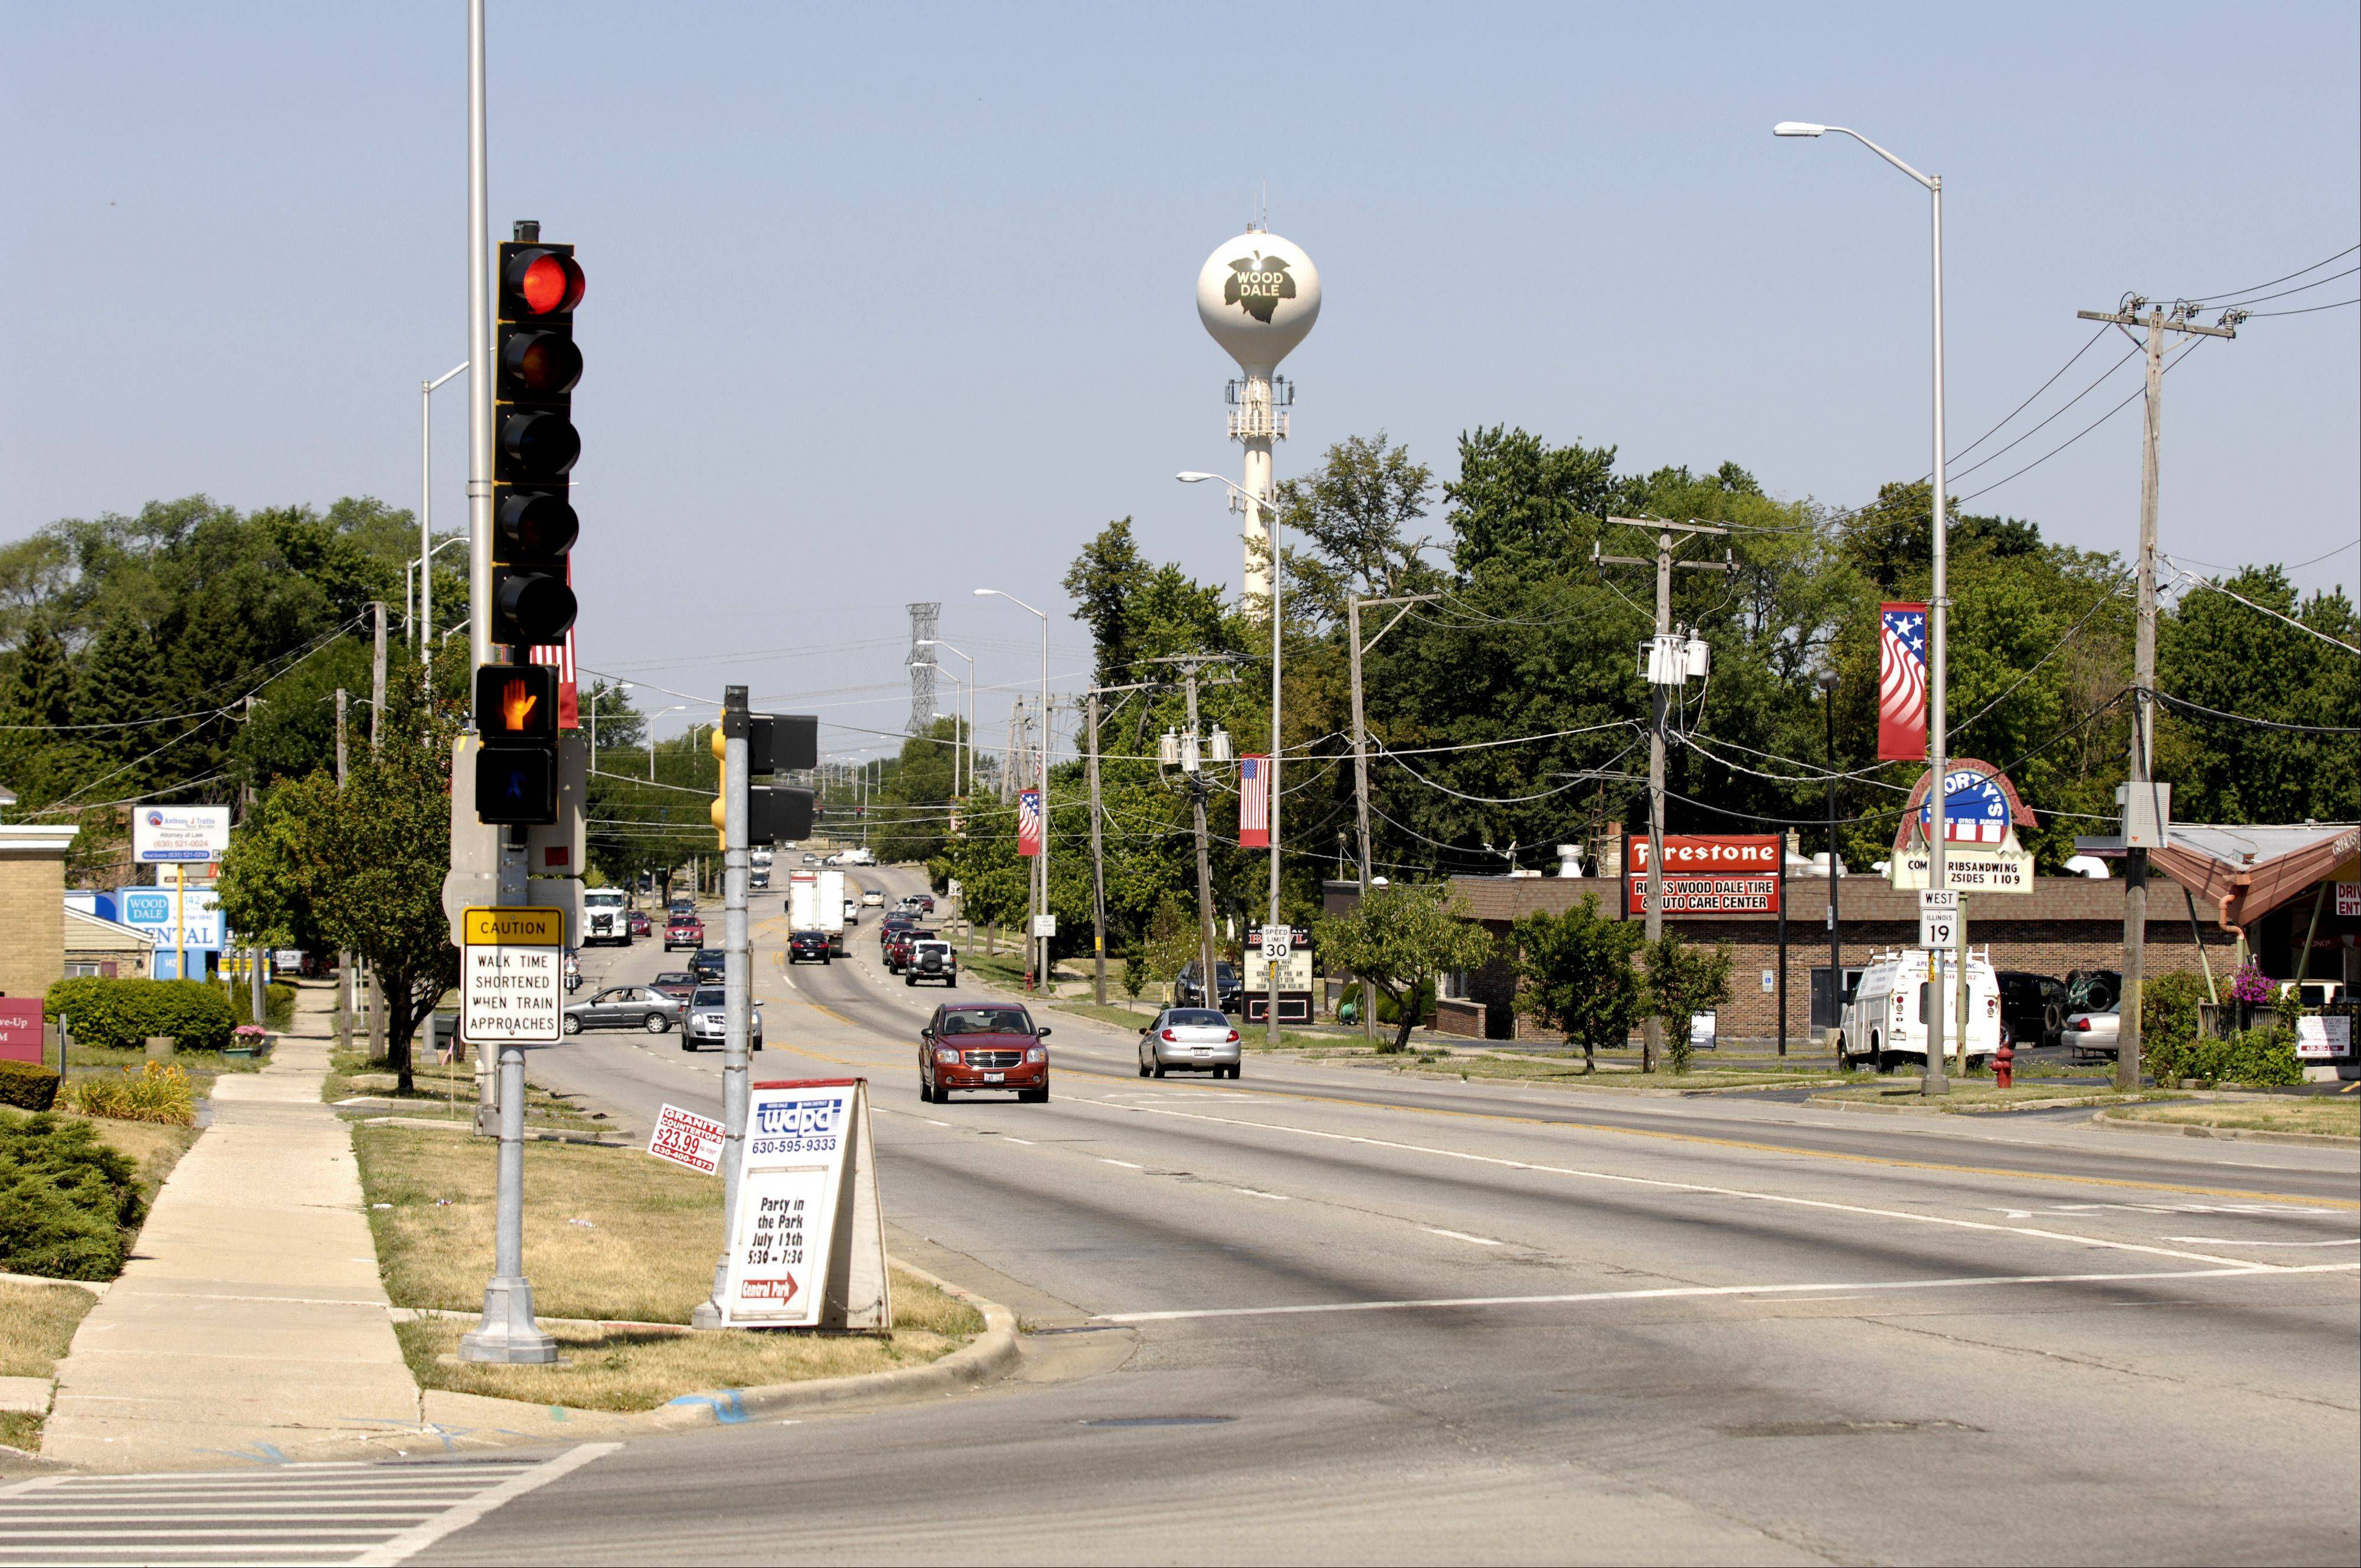 This intersection of Irving Park Road and Wood Dale Road in Wood Dale will be the site of a downtown vision and community park area hoped to attract people to the area.